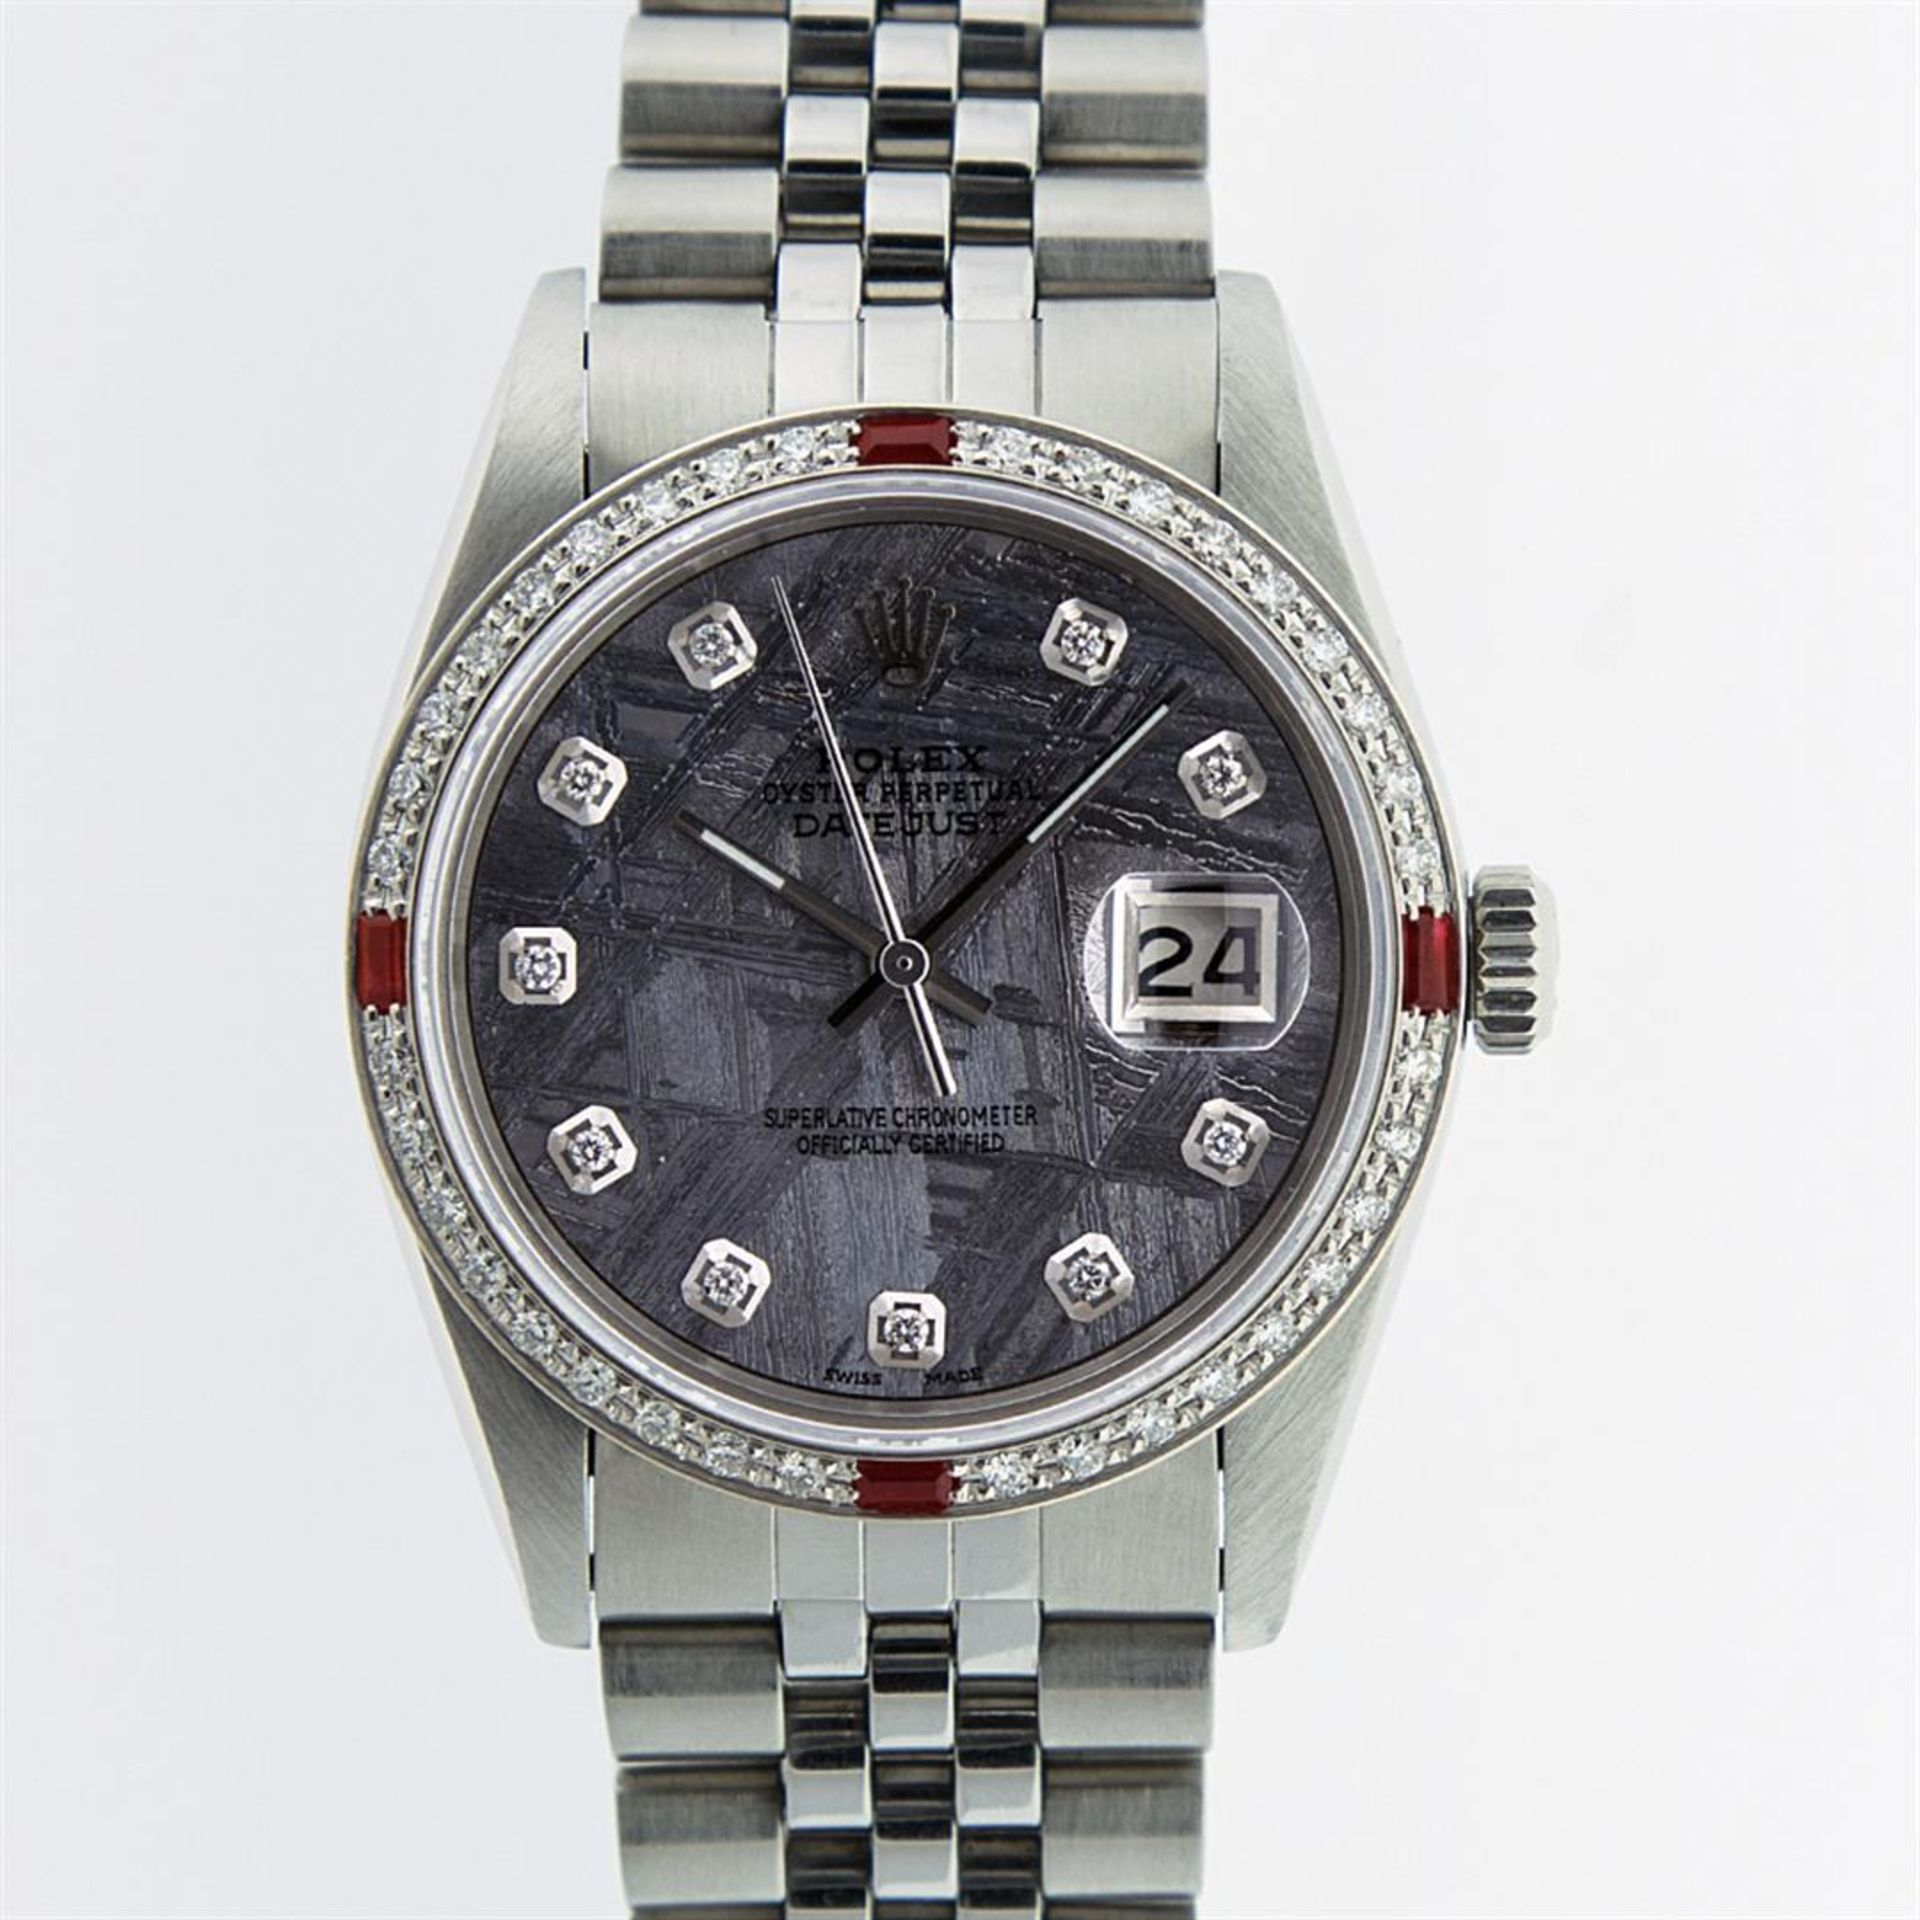 Rolex Mens Stainless Steel Meteorite Diamond And Ruby Datejust Wristwatch 36MM - Image 6 of 9